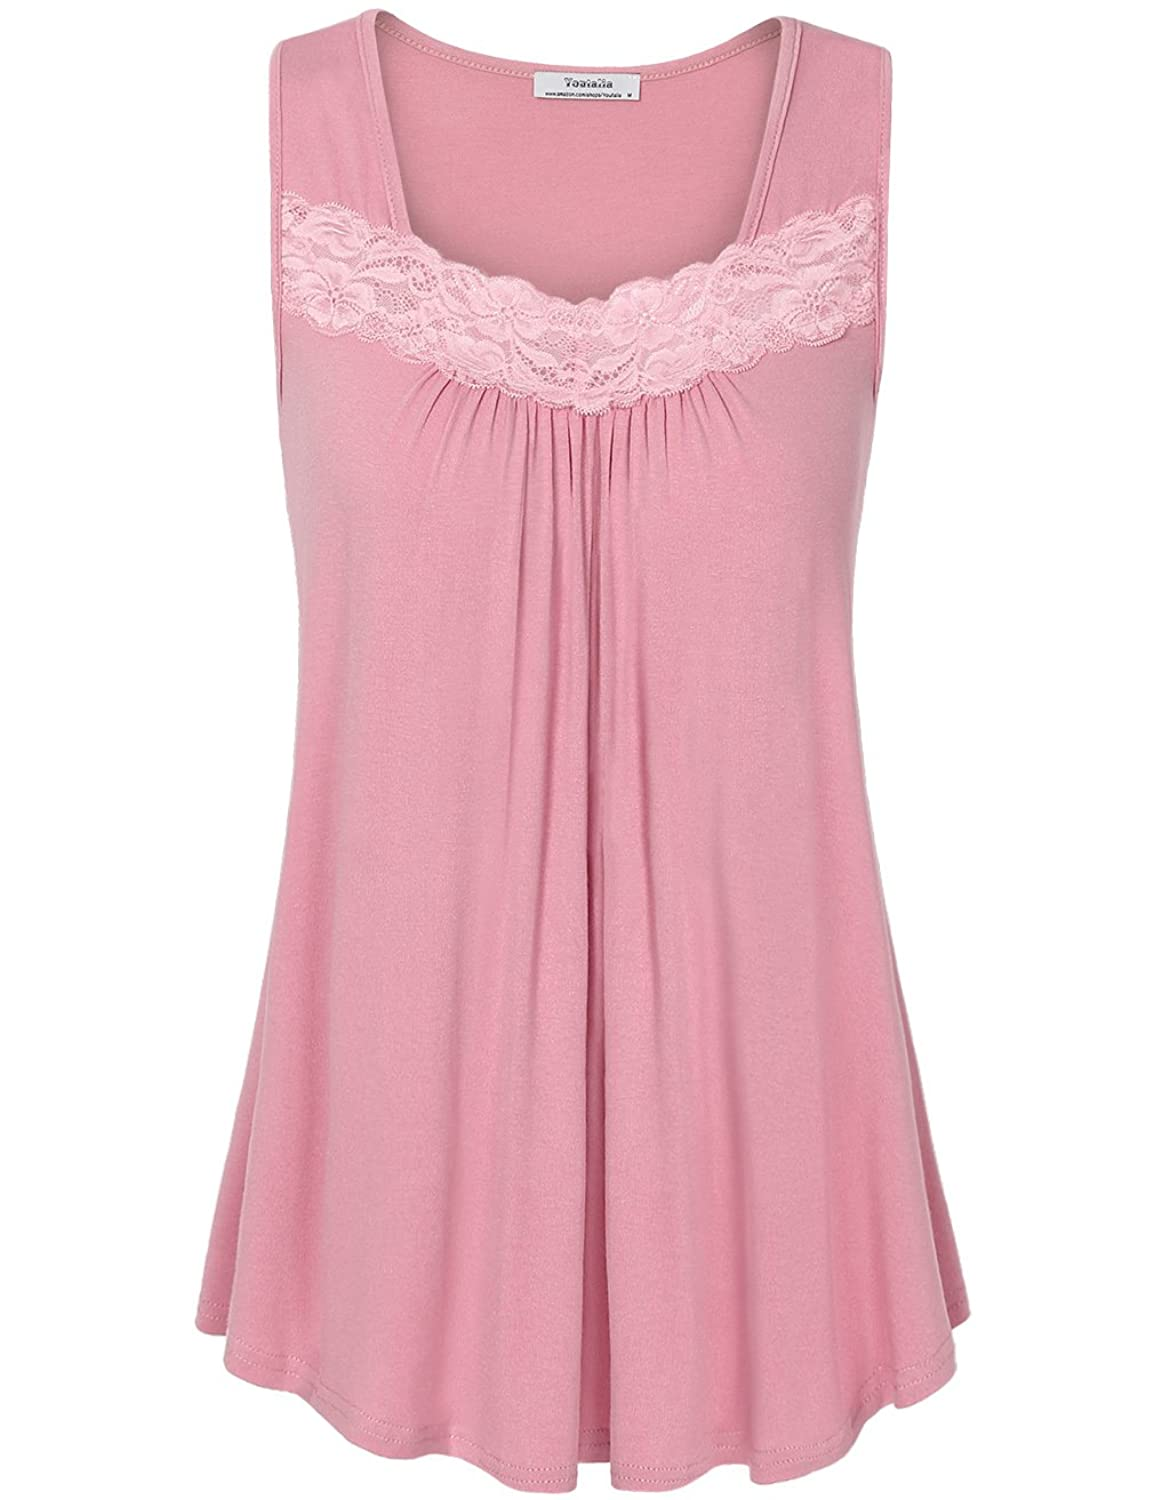 4b019f28 Top4: Youtalia Womens Summer Sleeveless Tops Lace Scoop Neck Pleated Front  Office Tank